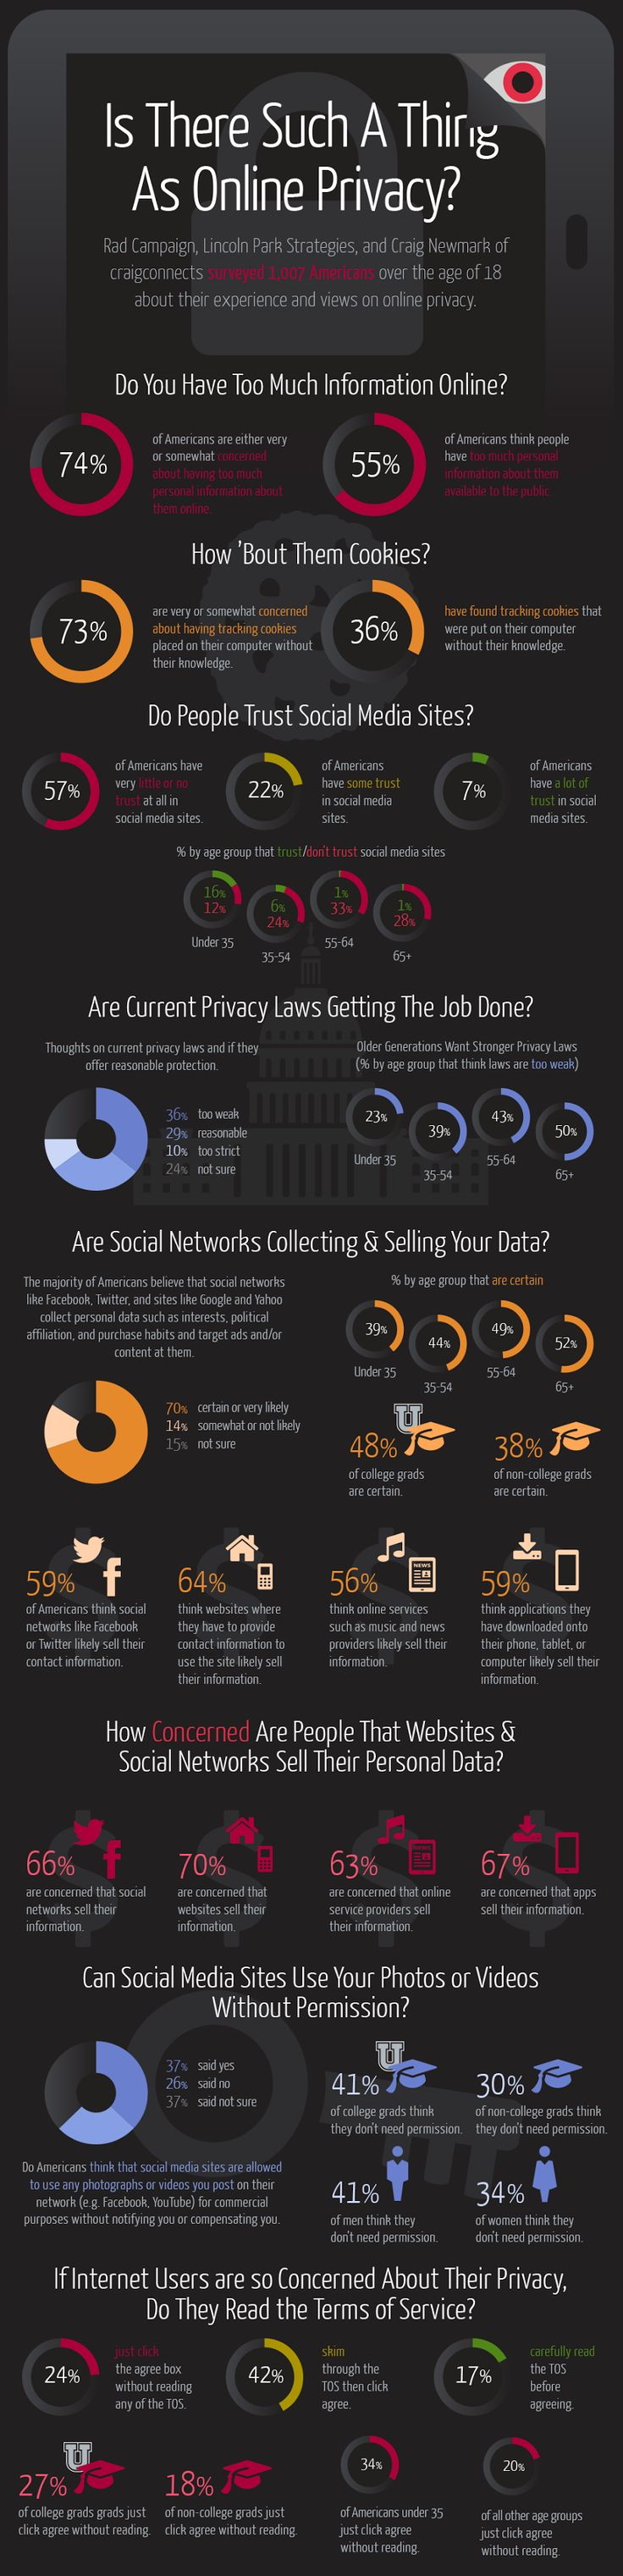 Is there such a thing as Internet privacy? #Infographic #socialmedia #internet